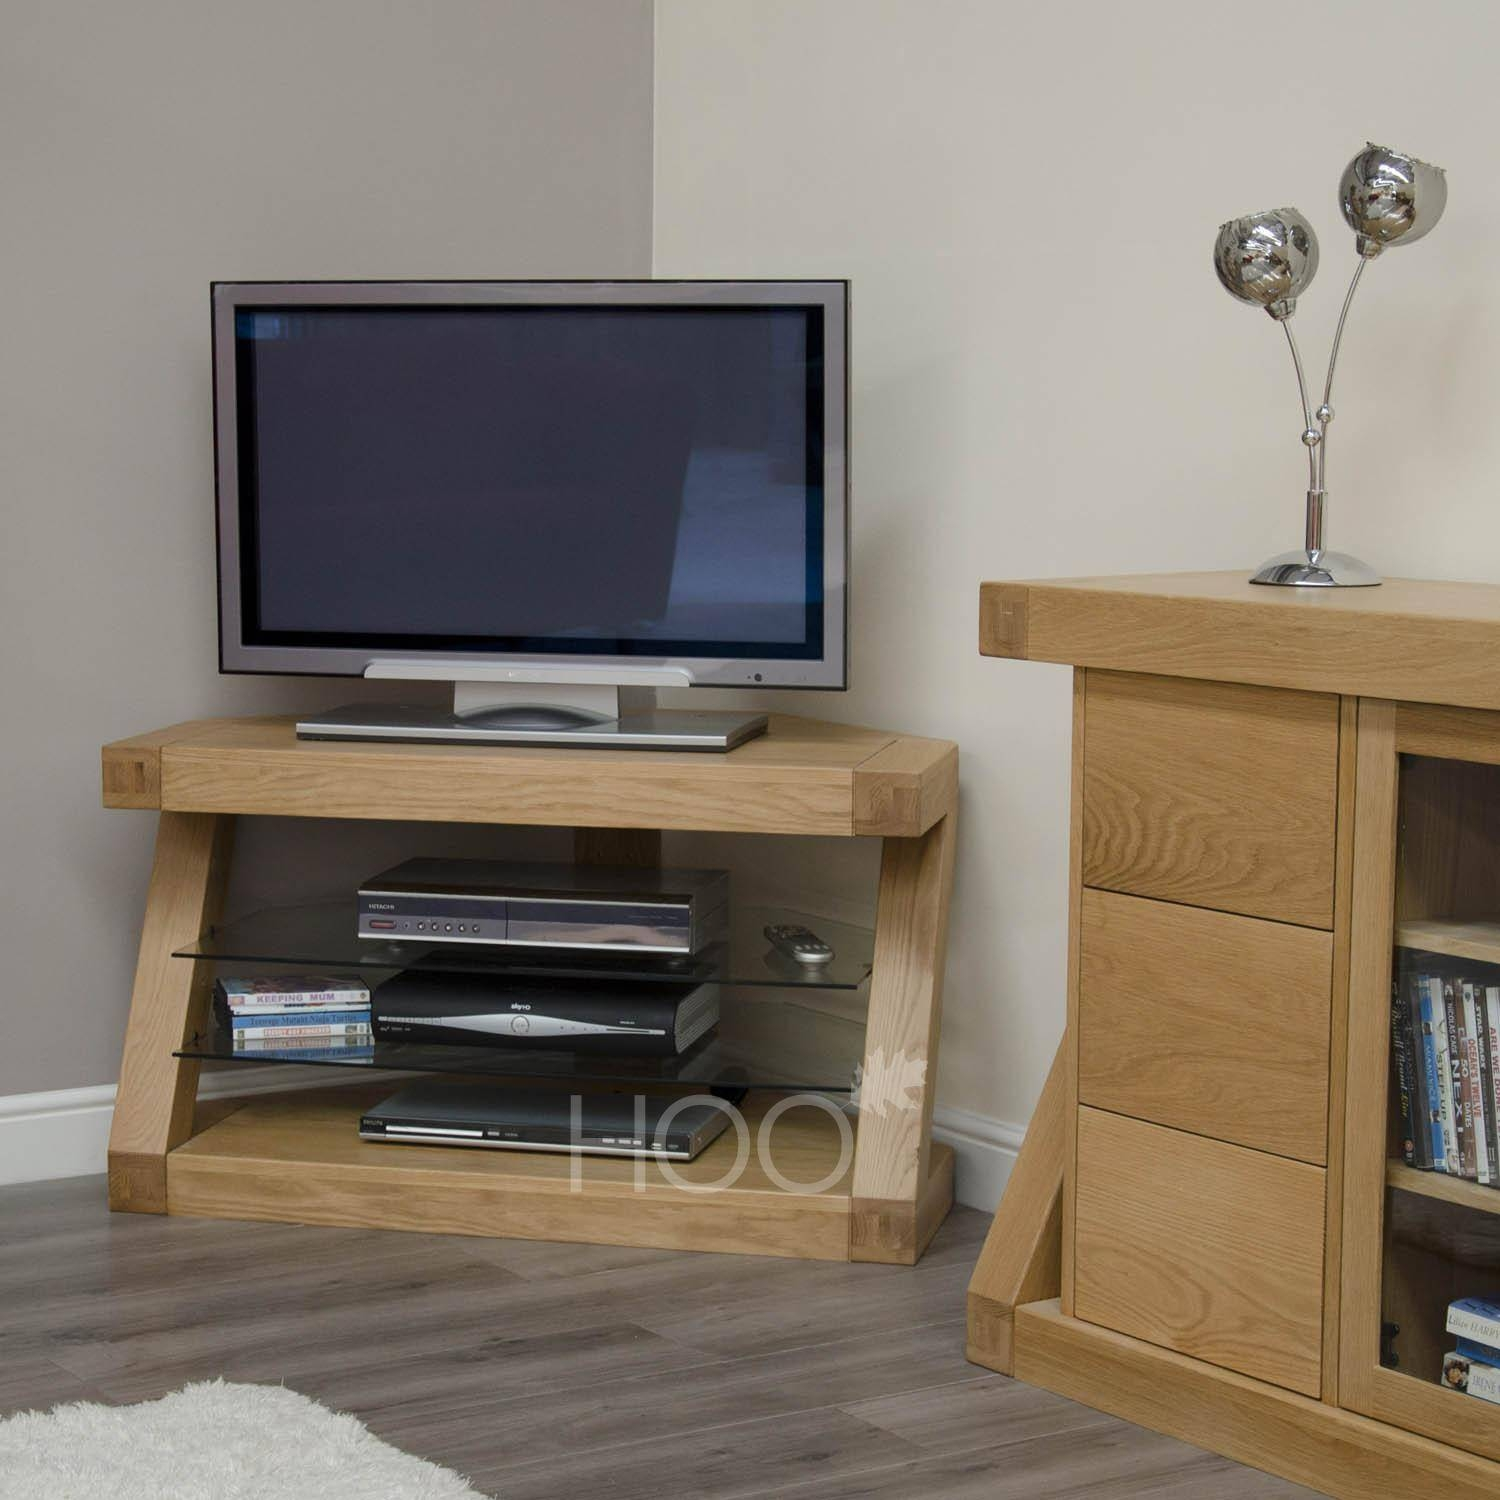 Tv Units - Oak Living Room Furniture - Oak Furniturehouse Of Oak within Small Oak Corner Tv Stands (Image 15 of 15)